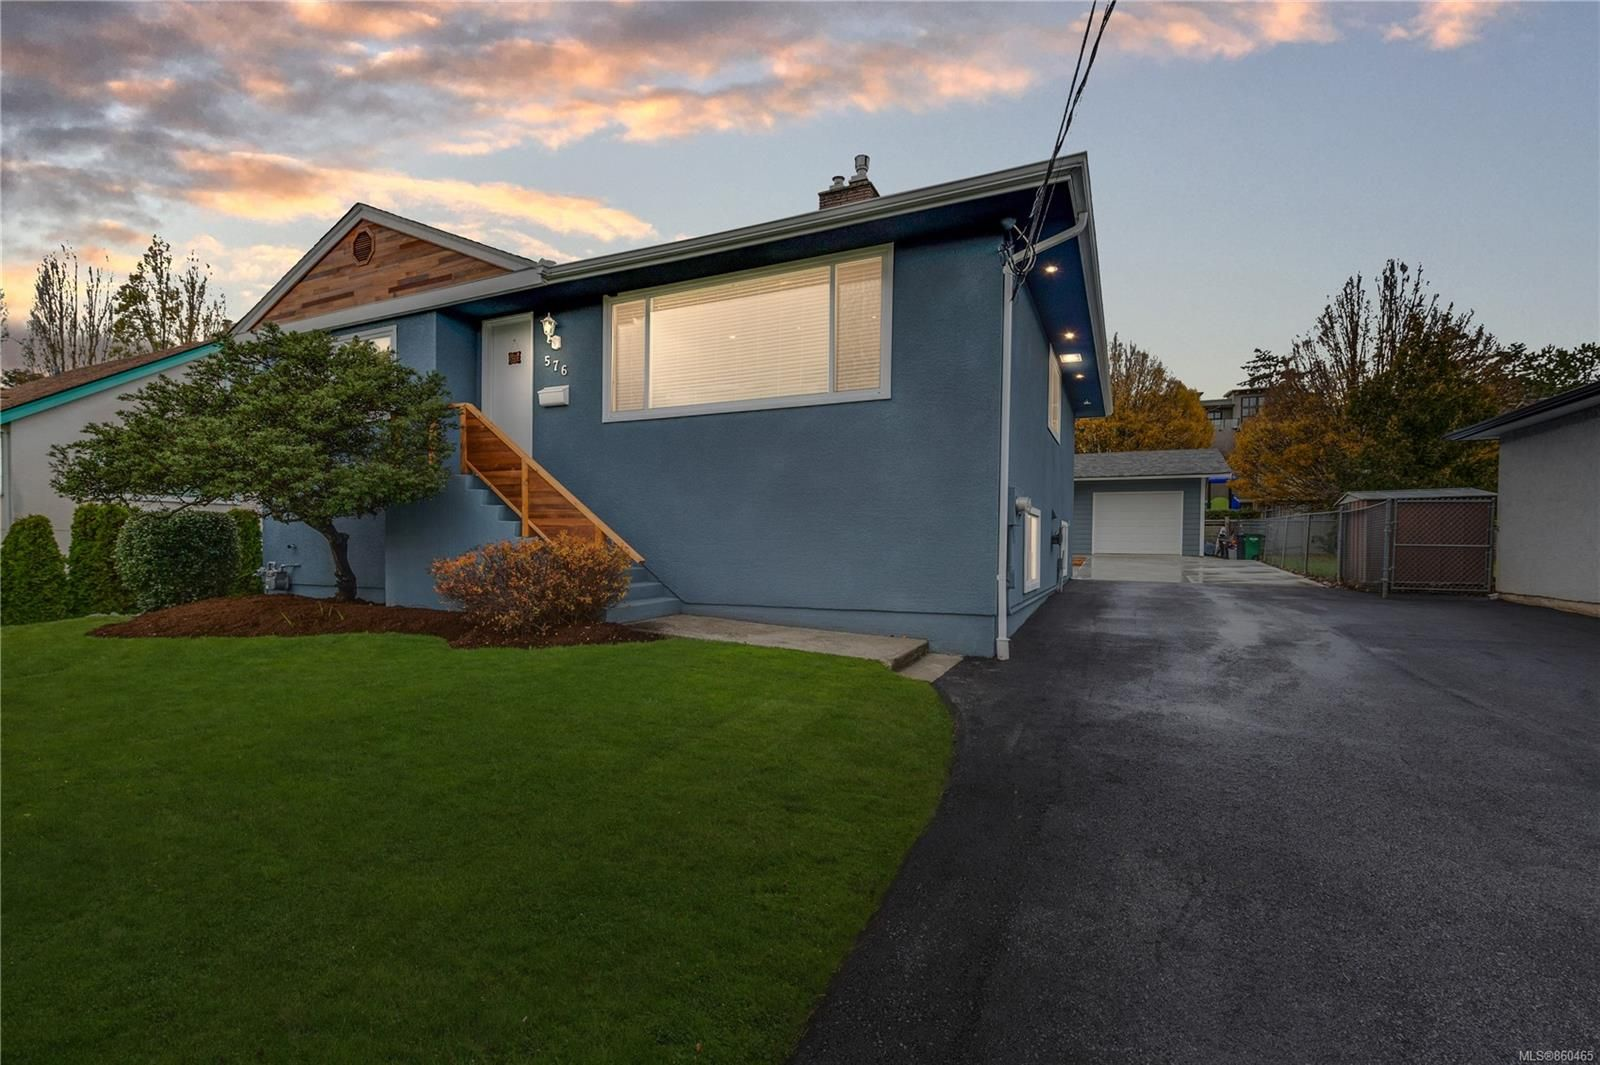 Main Photo: 576 Whiteside St in : SW Tillicum House for sale (Saanich West)  : MLS®# 860465